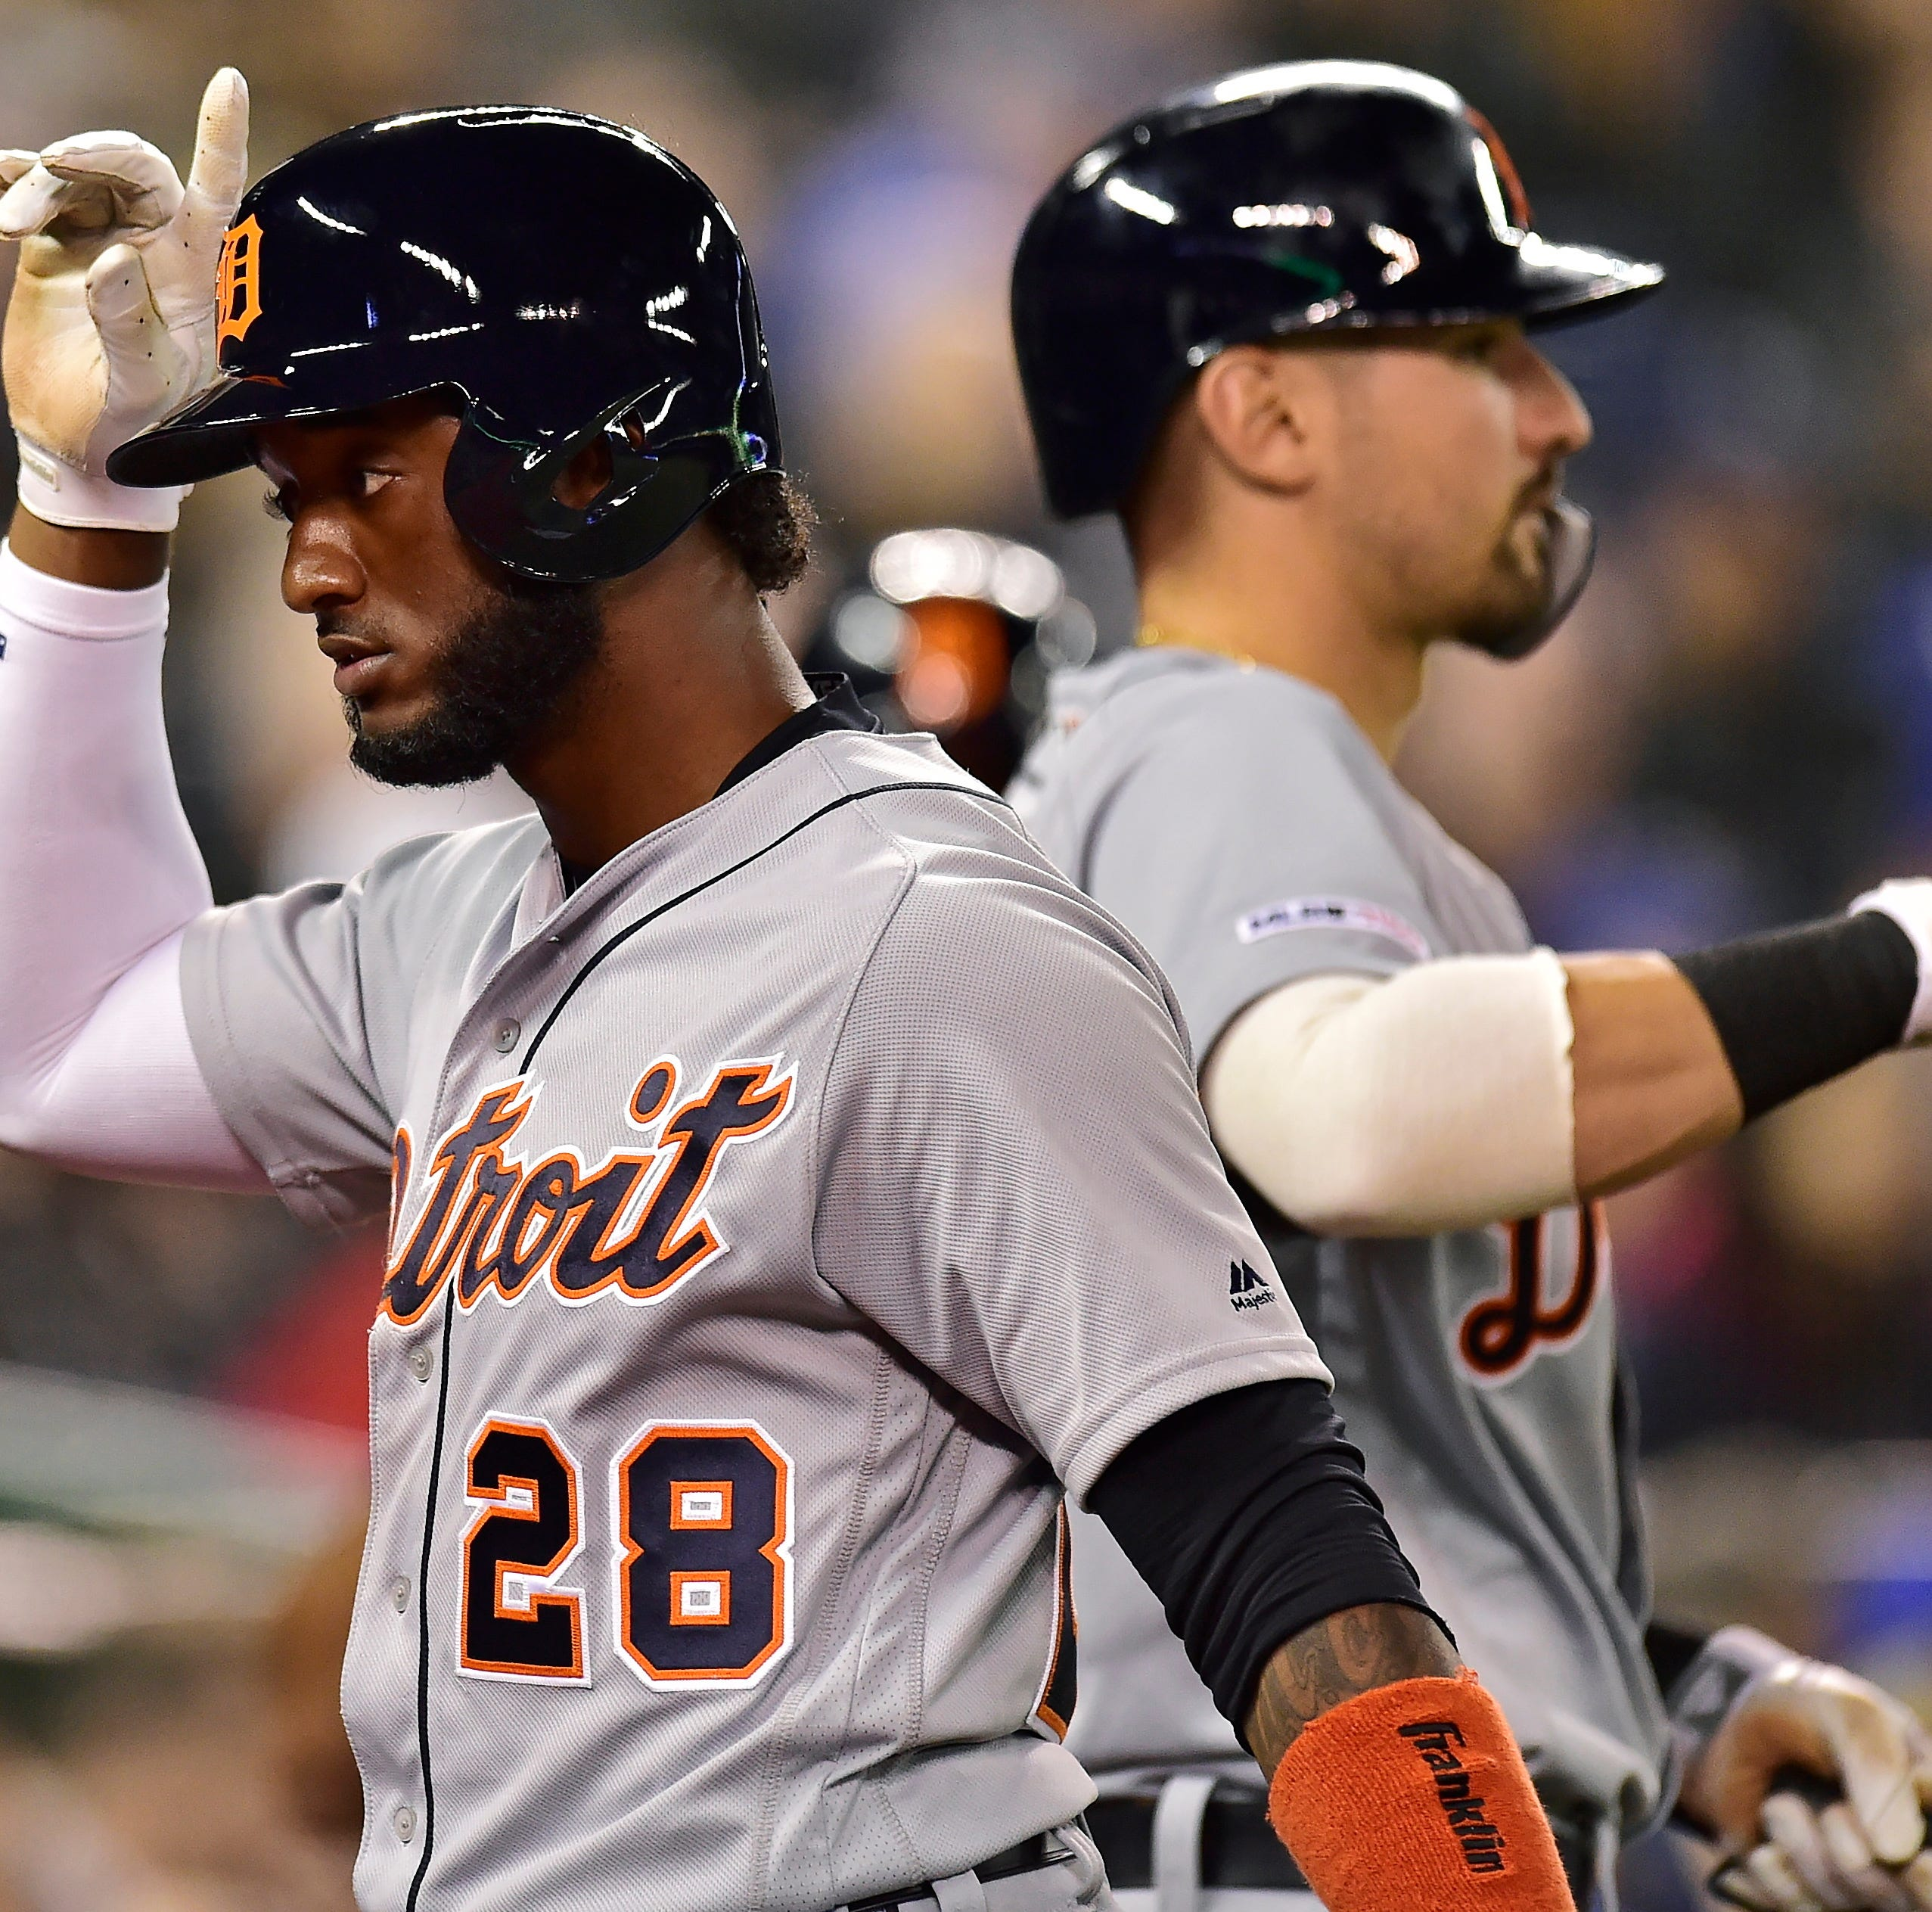 Injuries (Nick Castellanos) and illness (Niko Goodrum) leave Tigers short-handed